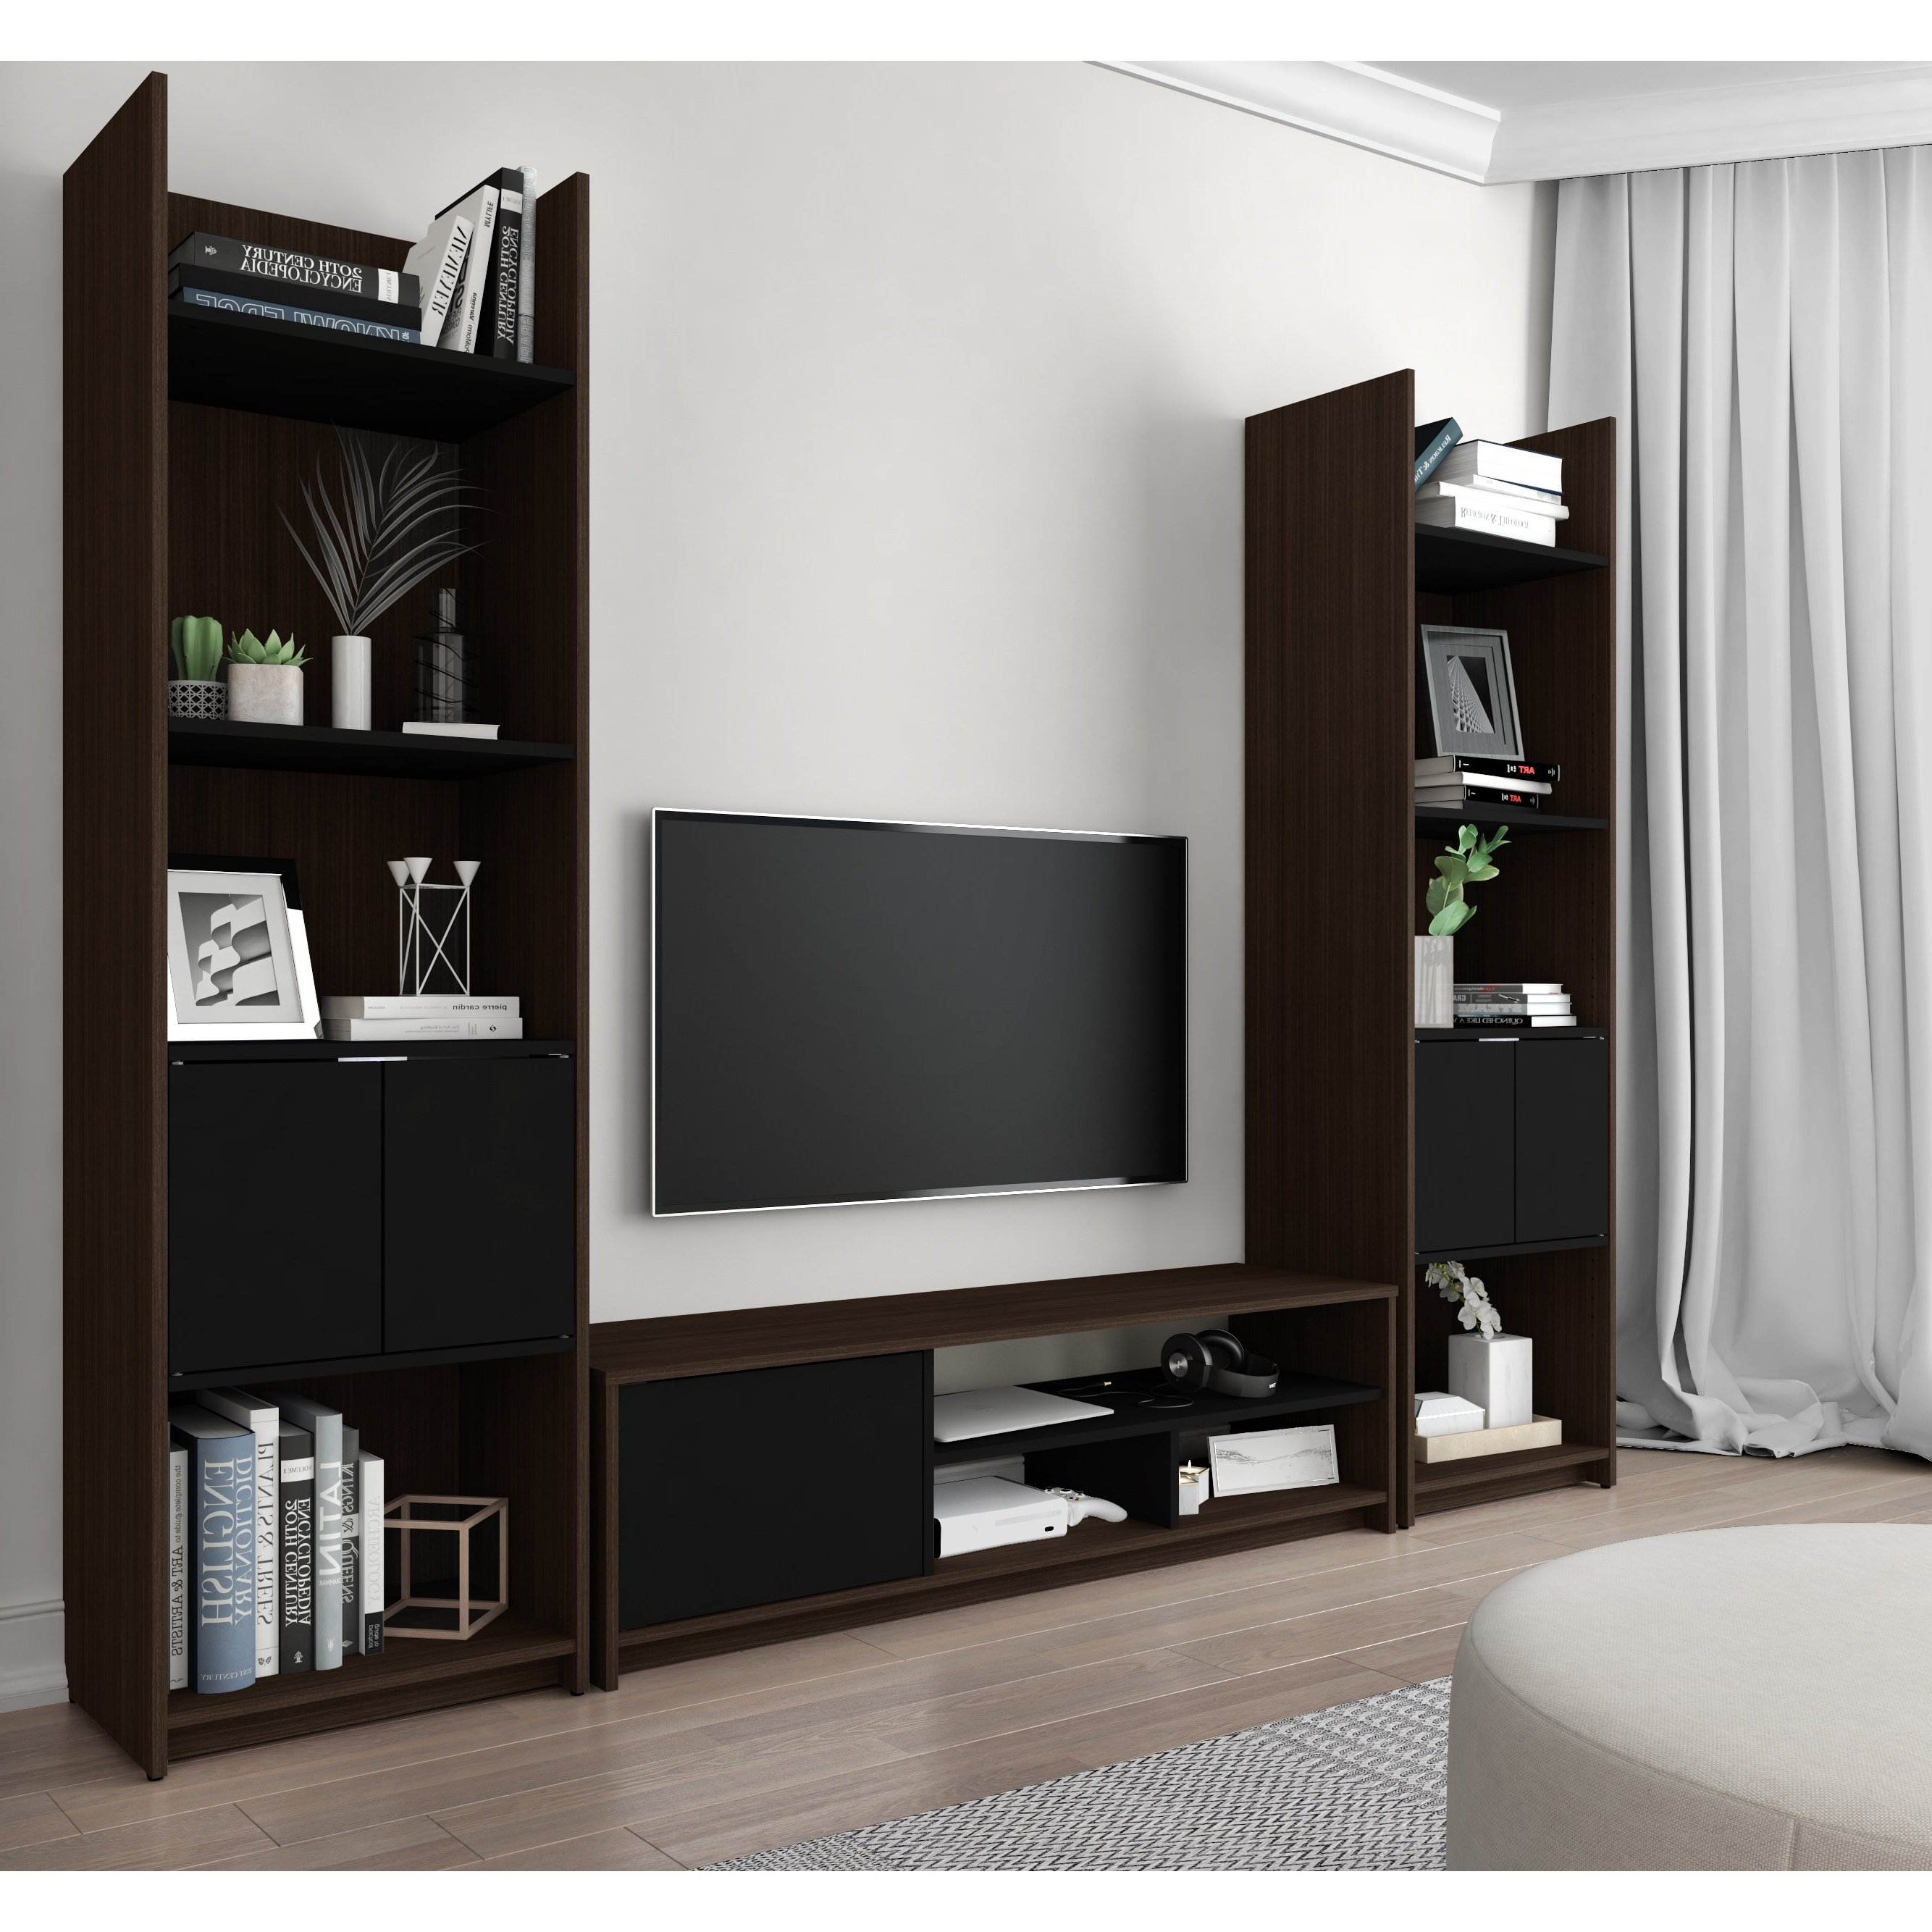 Widely Used Shop Bestar Small Space 3 Piece Tv Stand And 2 Storage Towers Set Throughout Tv Stands For Small Spaces (View 9 of 20)